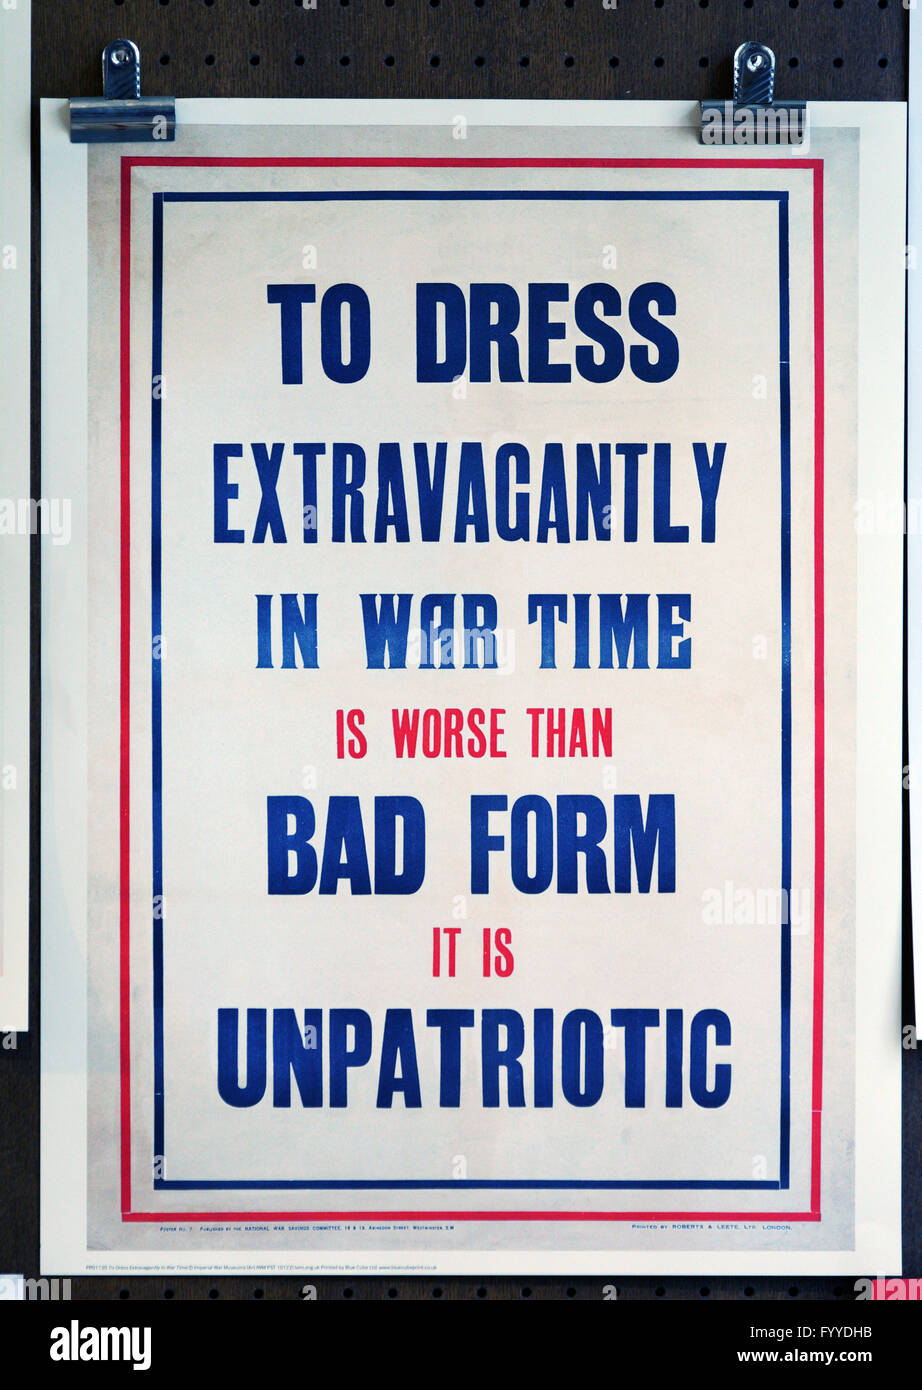 Second World War Dress Code poster promoting modest dress and wartime austerity - Stock Image